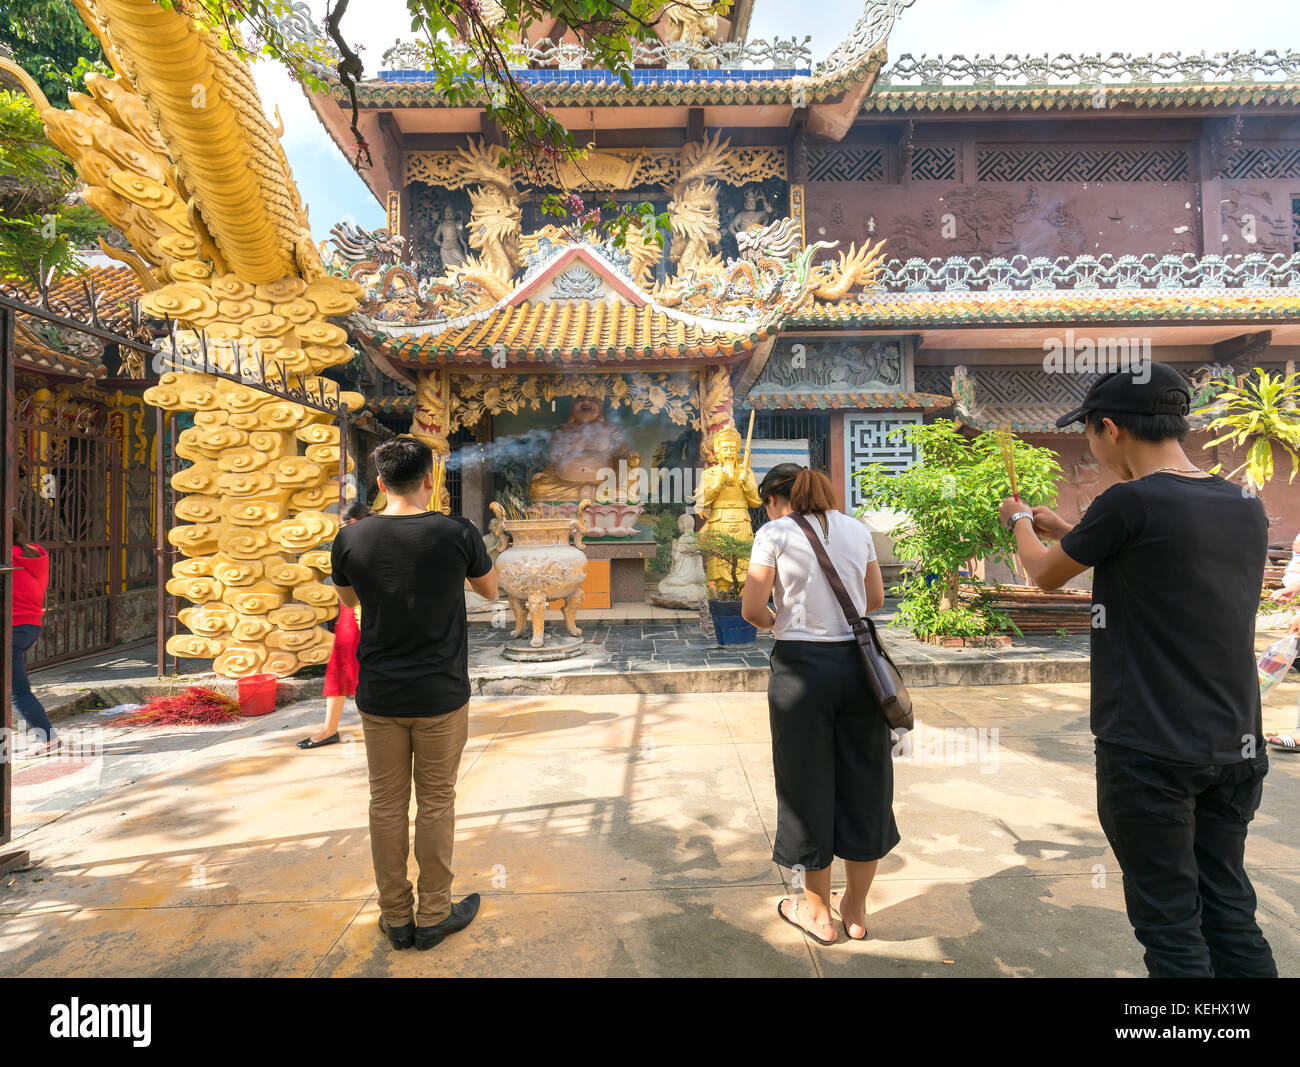 Buddhist revered ceremony in temple beautiful architecture, many statues sanctuary express cultural beauty of religious - Stock Image